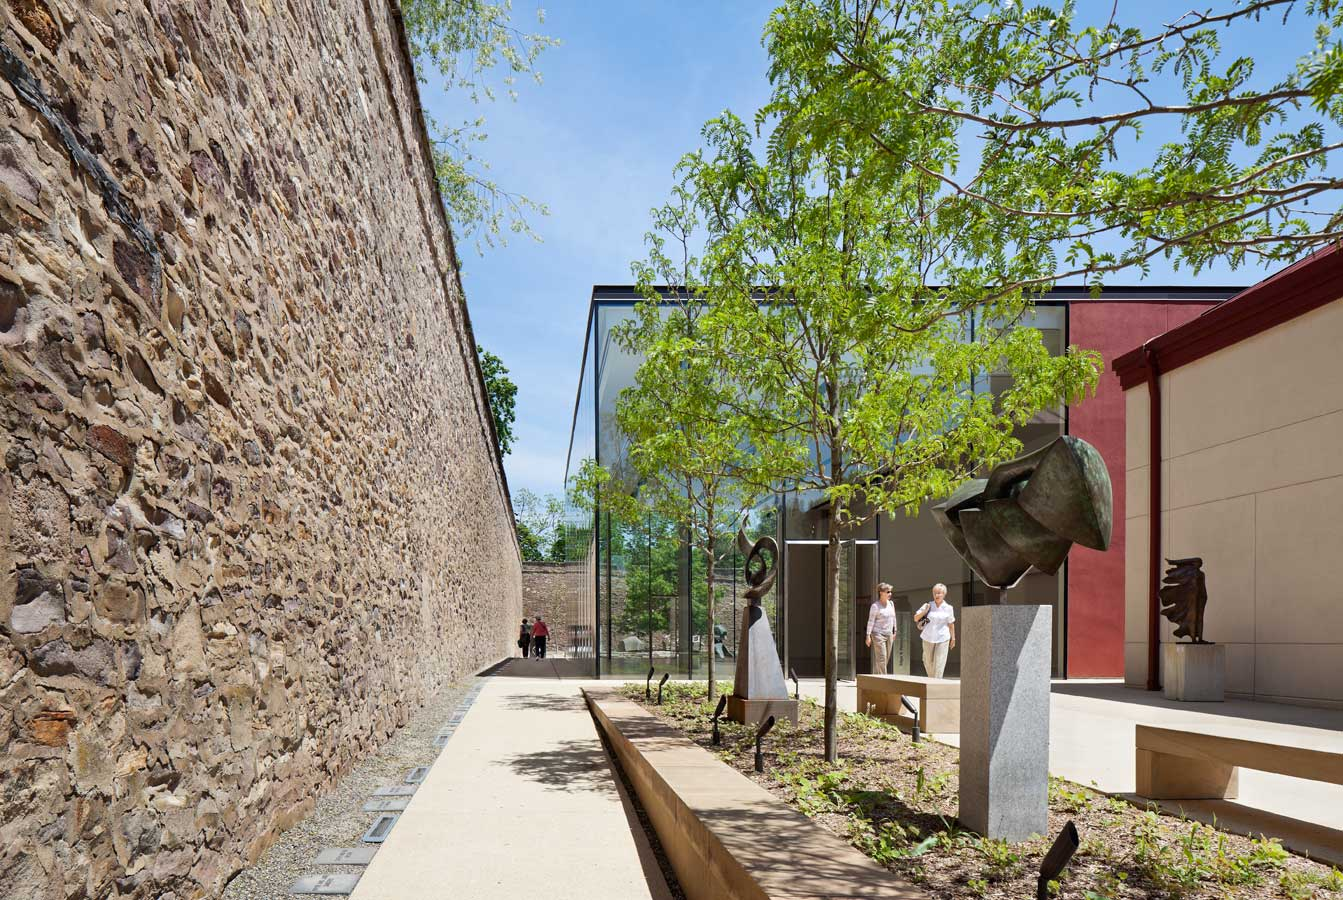 <p>The stone wall of the former prison appears to enter the space through the uninterrupted glass walls of the pavilion, lending visual interest and historical reference to the structure. <br><small>&copy; Michael Moran/OTTO</small></p>